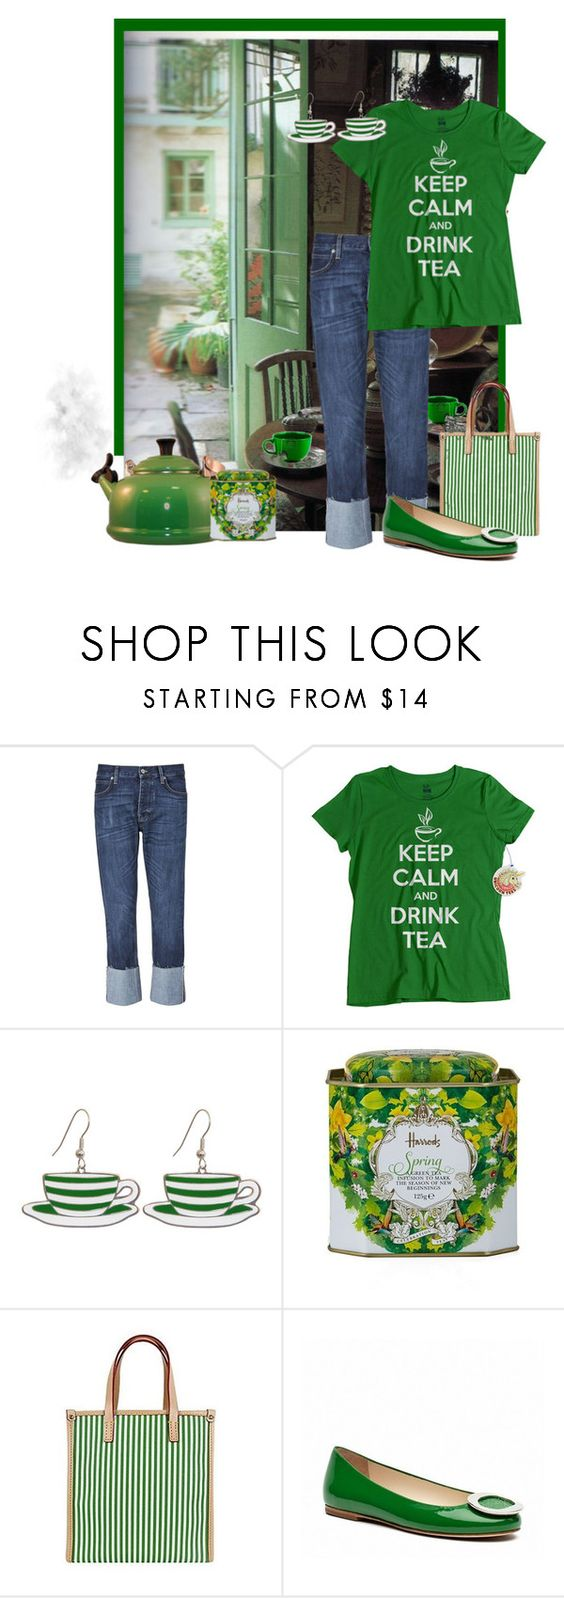 """Green Day"" by heatherm3 ❤ liked on Polyvore featuring interior, interiors, interior design, home, home decor, interior decorating, MiH, Dollydagger, Harrods and Dooney & Bourke"